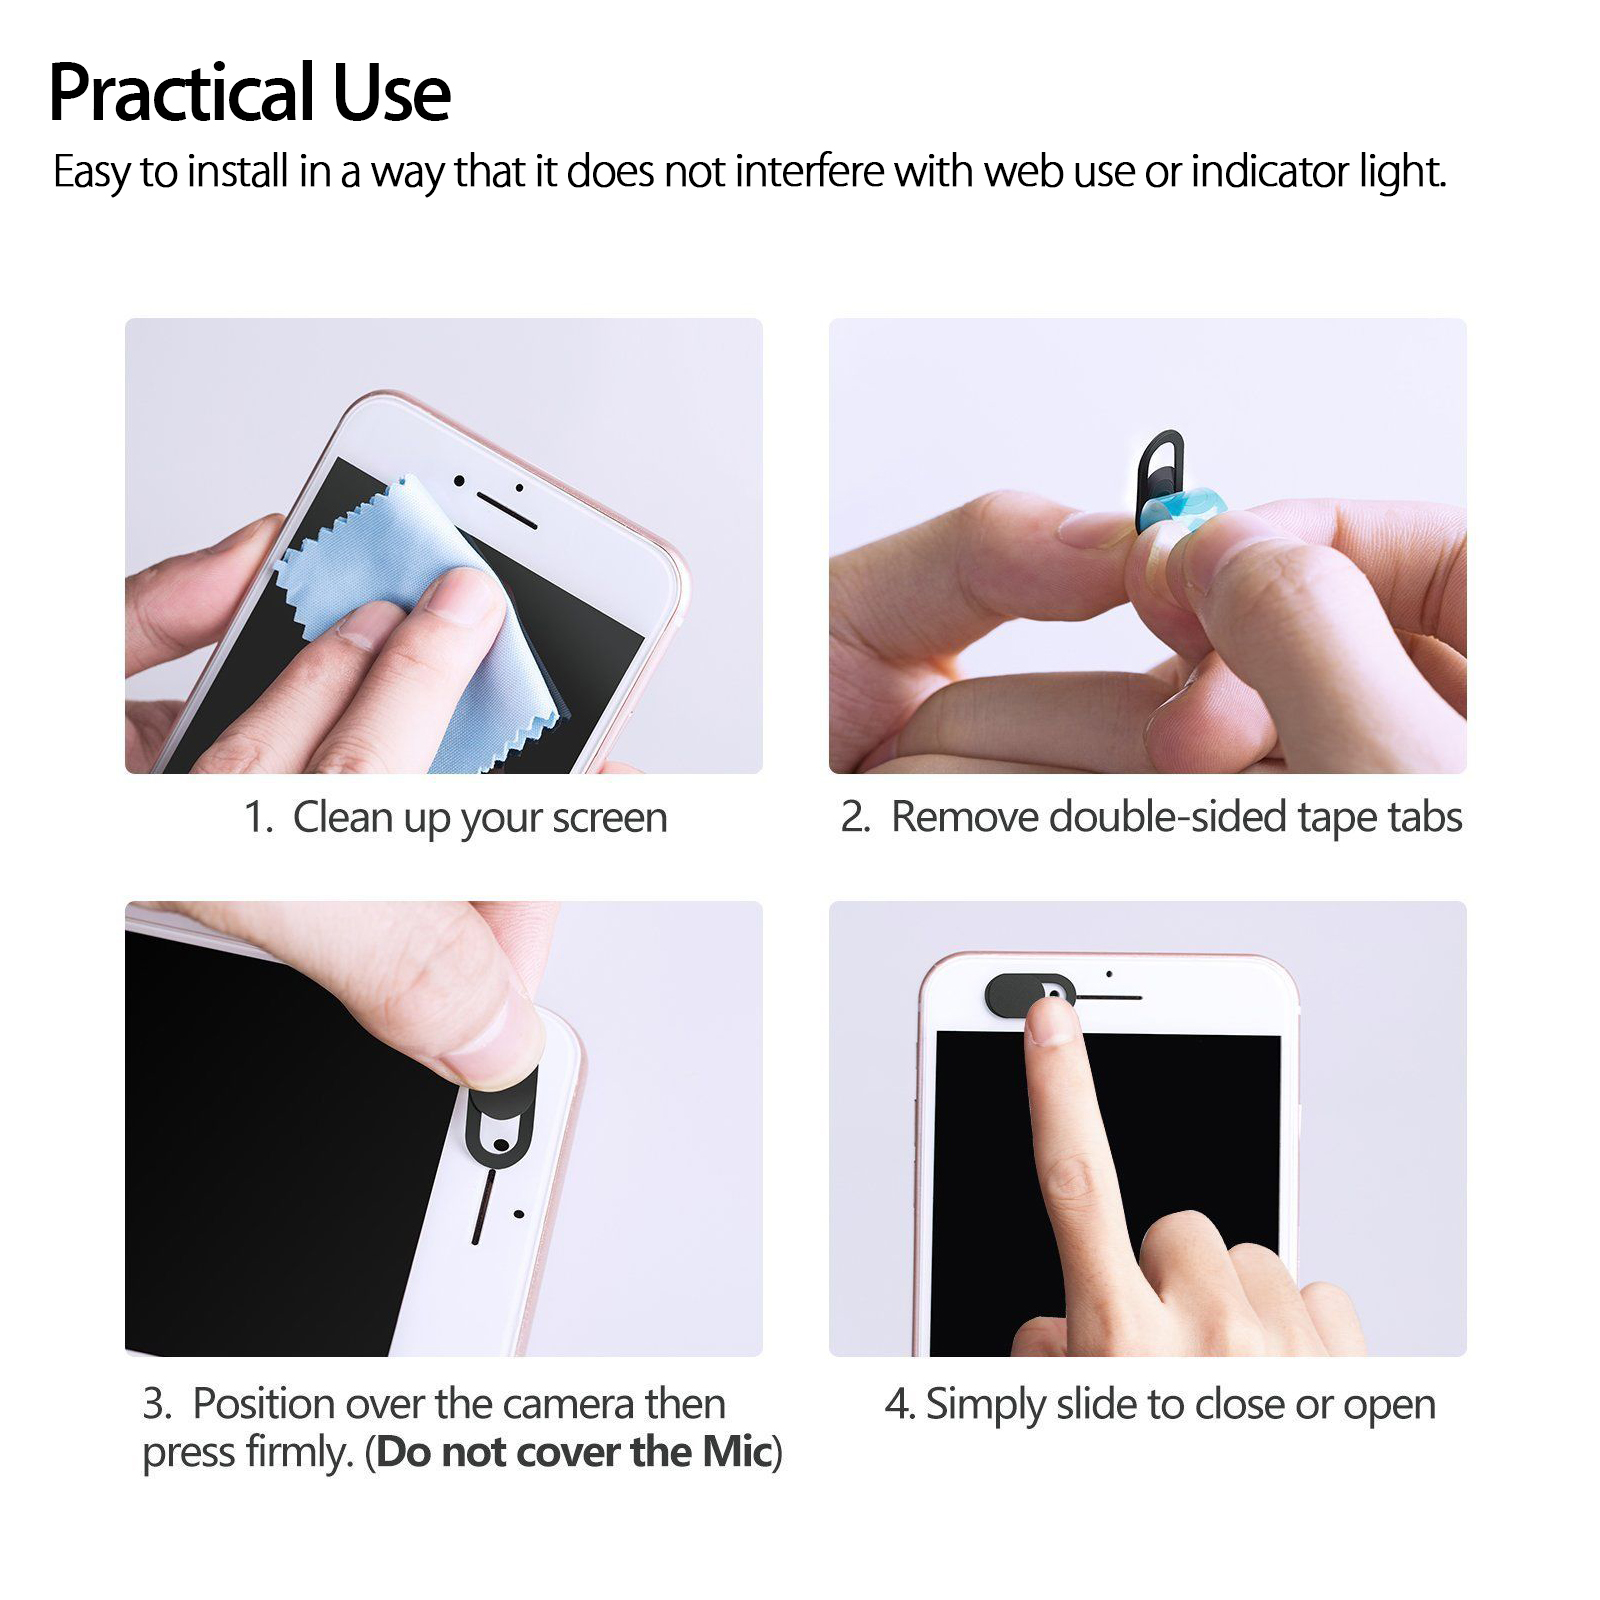 Echo Show Strong Adhesive iPhone Laptop Camera Cover ANYQOO 6 Pack Webcam Cover Slide Ultra Thin for Laptop Cute Cat Camera Cover Slide Protecting Privacy and Security Android Phone etc iPad